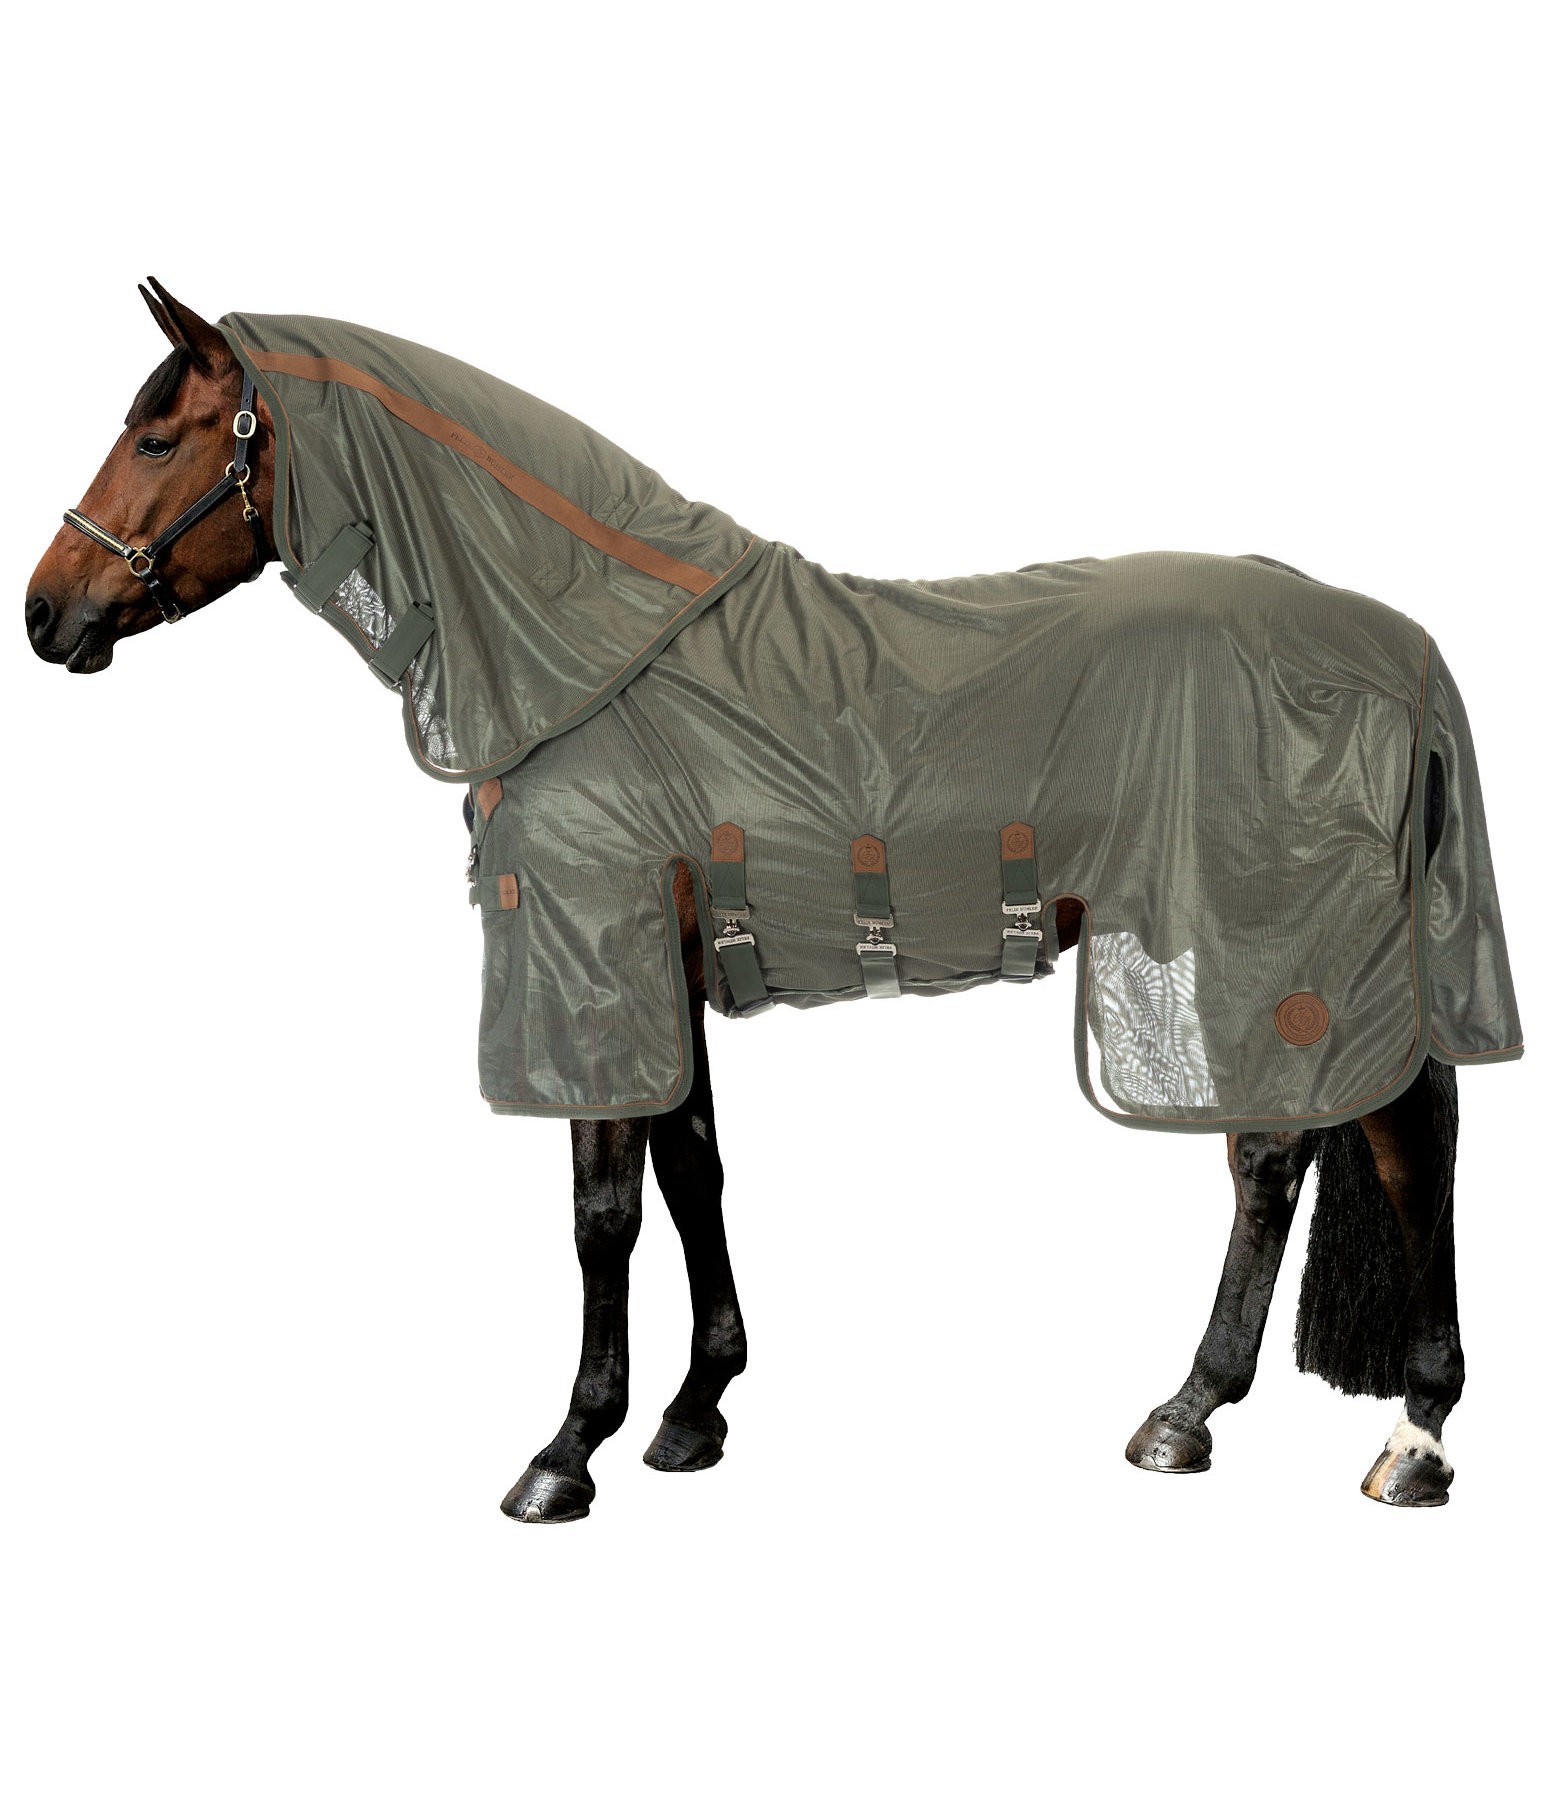 Full Neck Fly Rug Timeless Elegance with Detachable Neck Piece